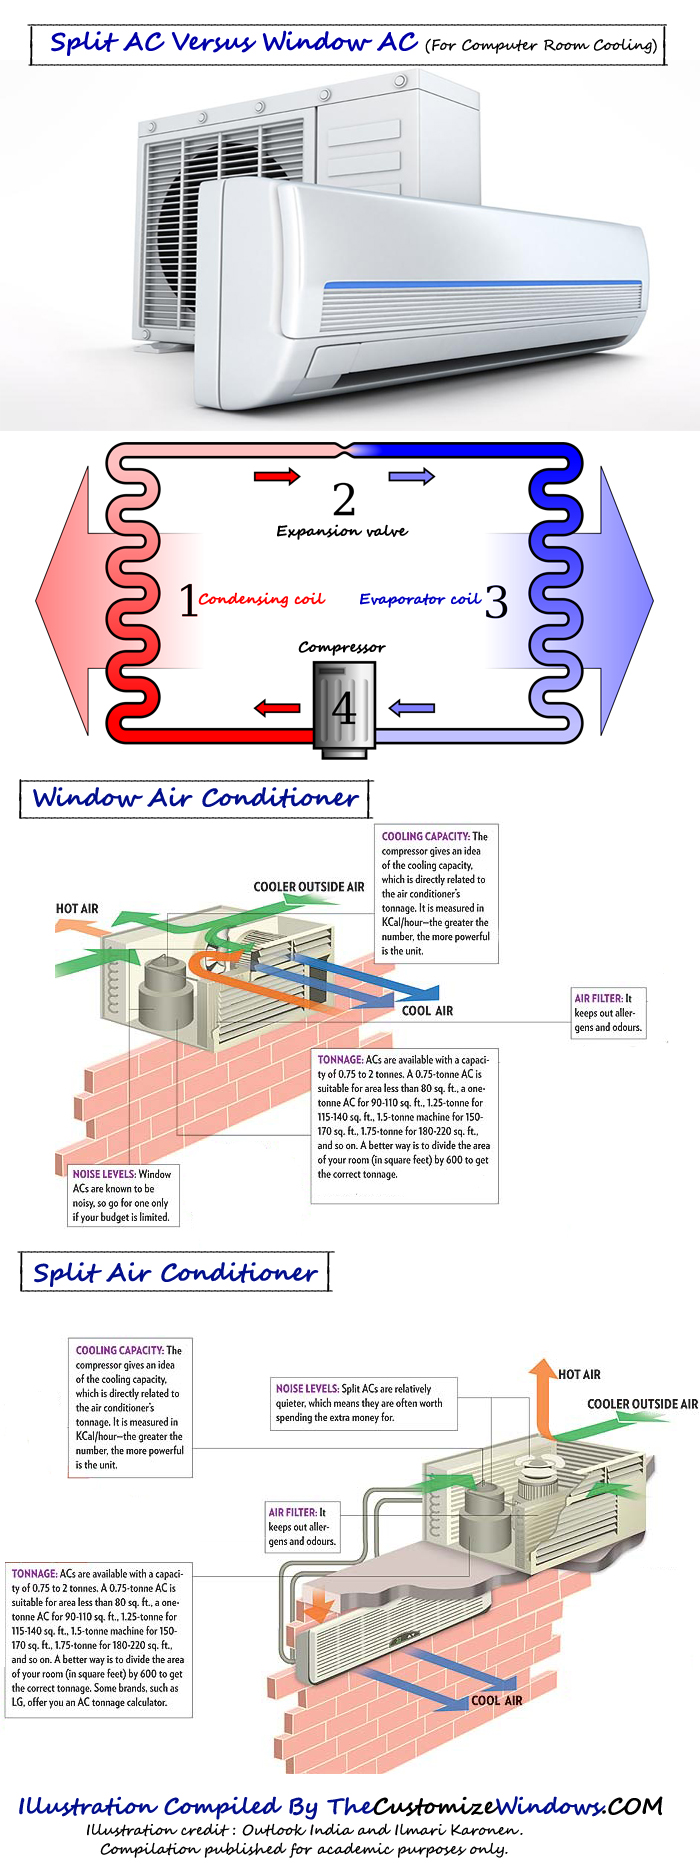 Split-AC-Versus-Window-AC-For-Computer-Room-Cooling